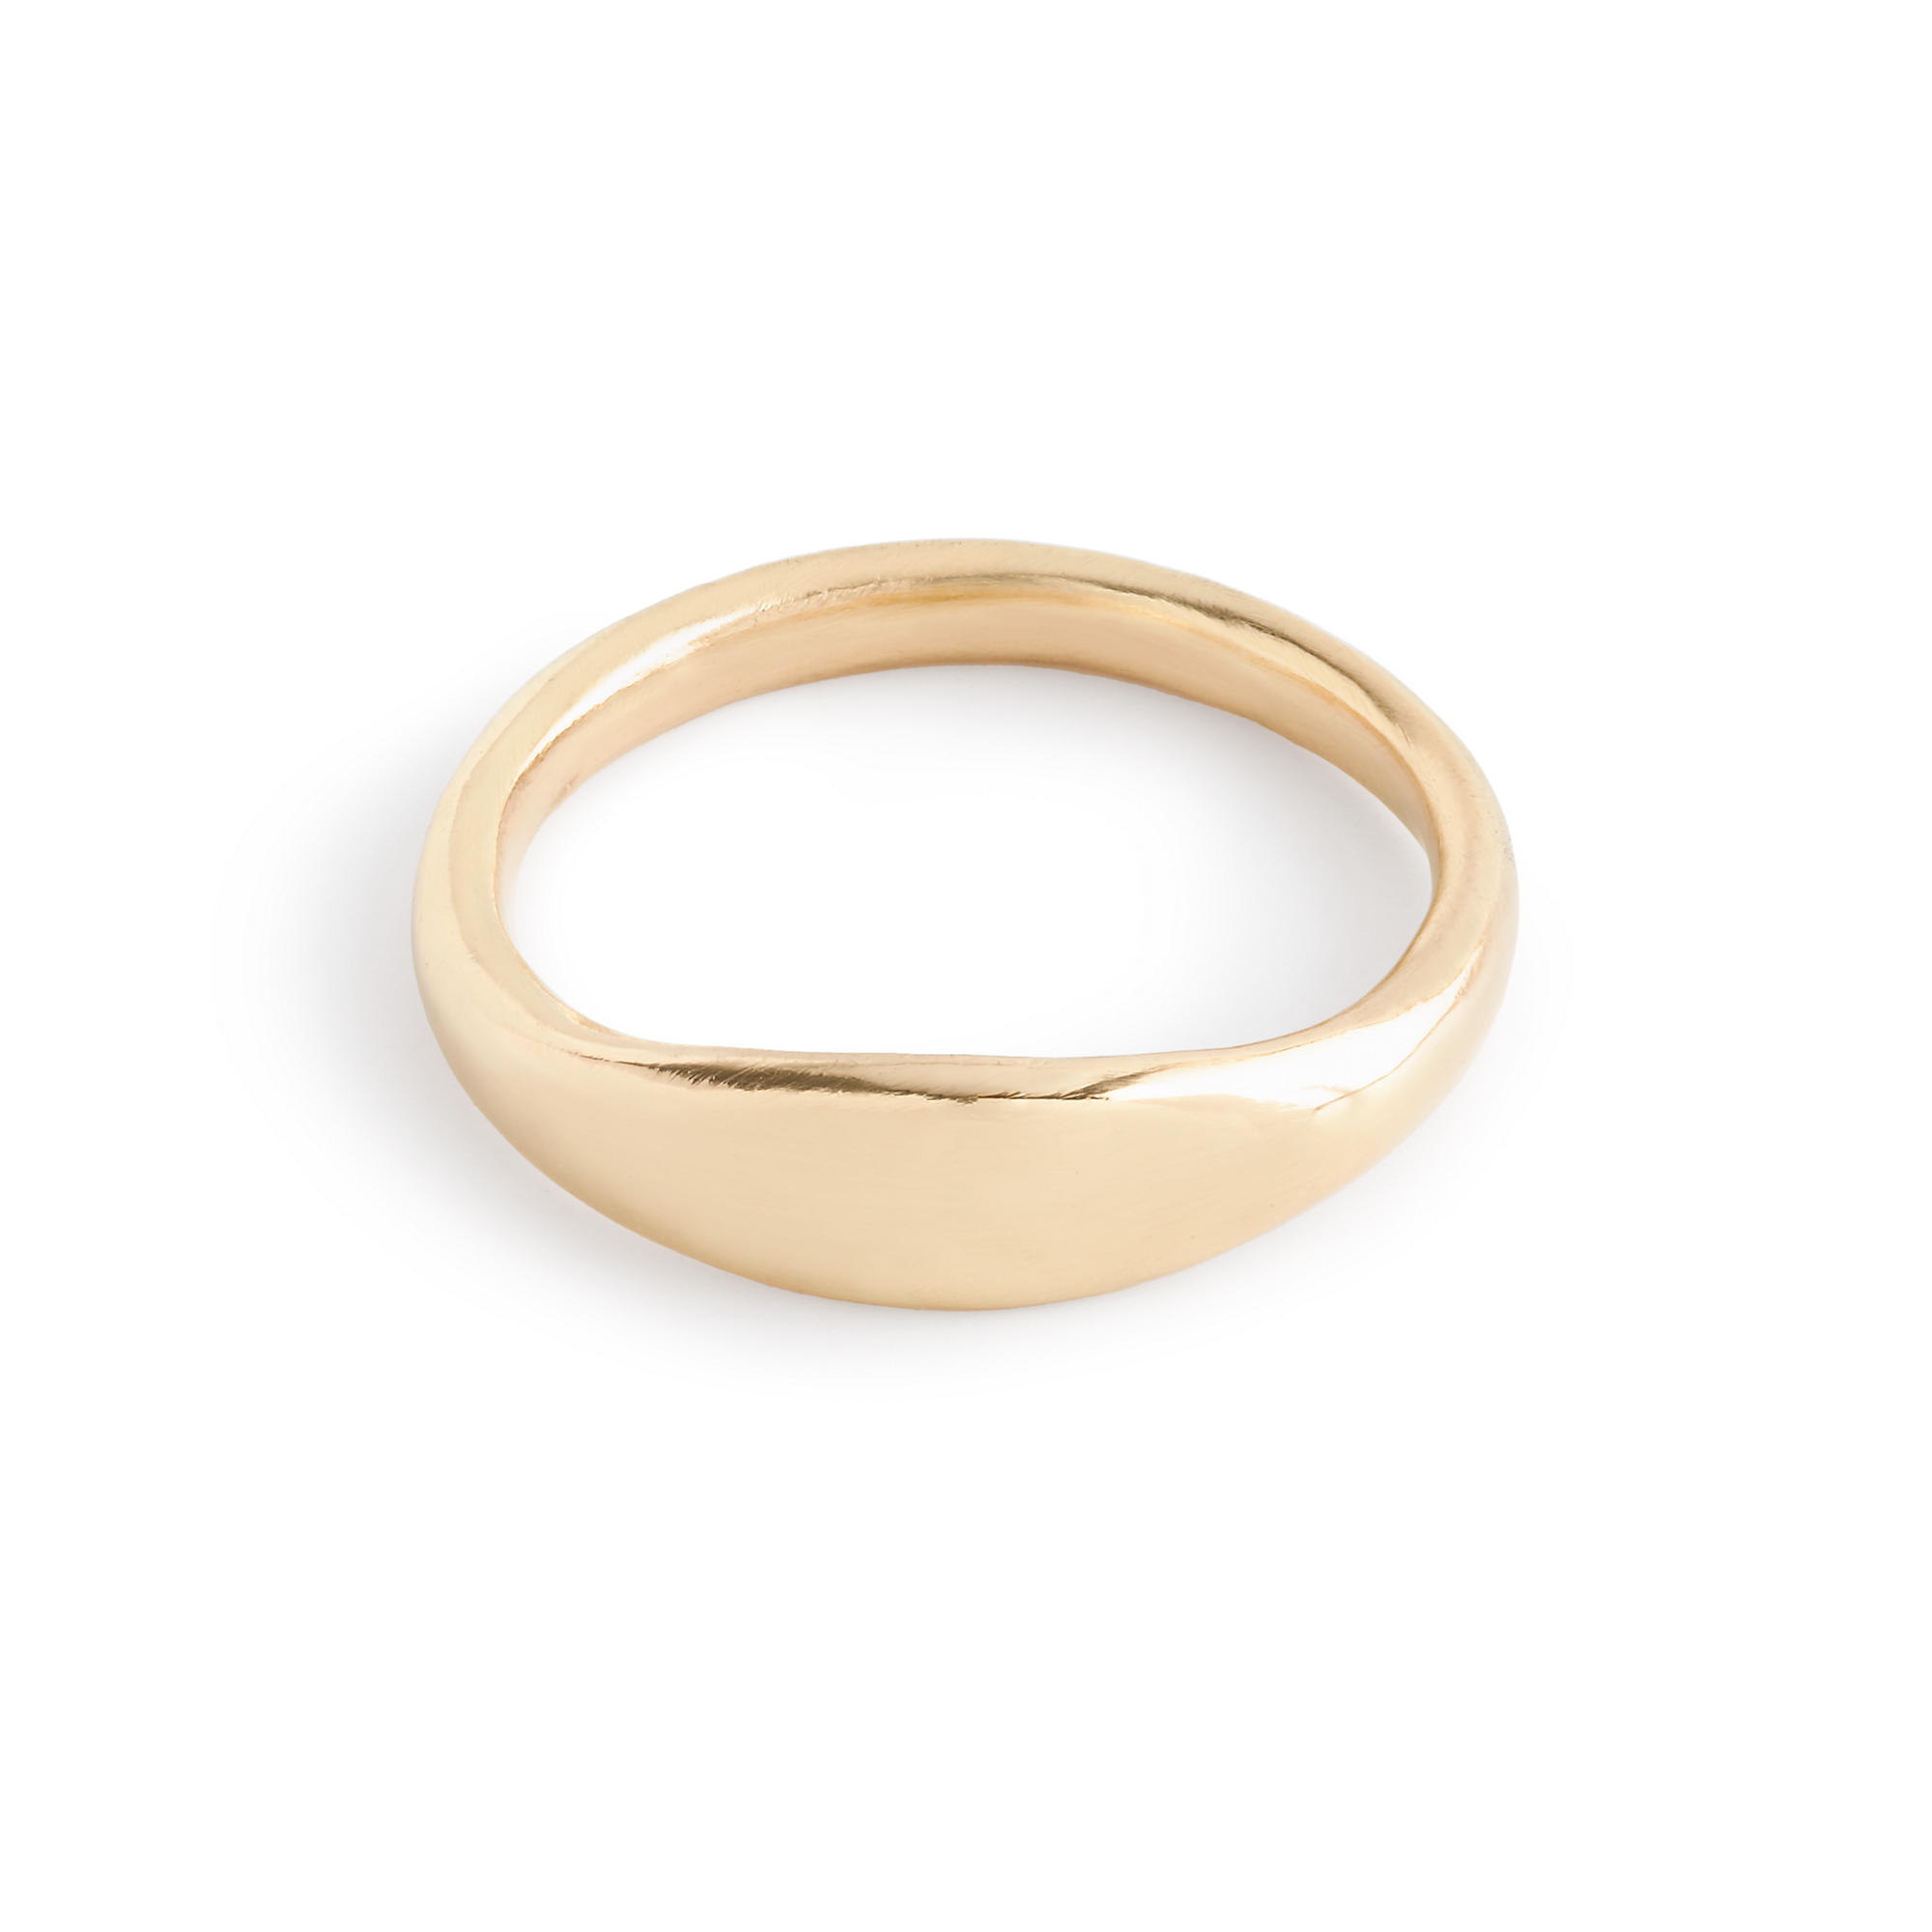 James Colarusso  Ring